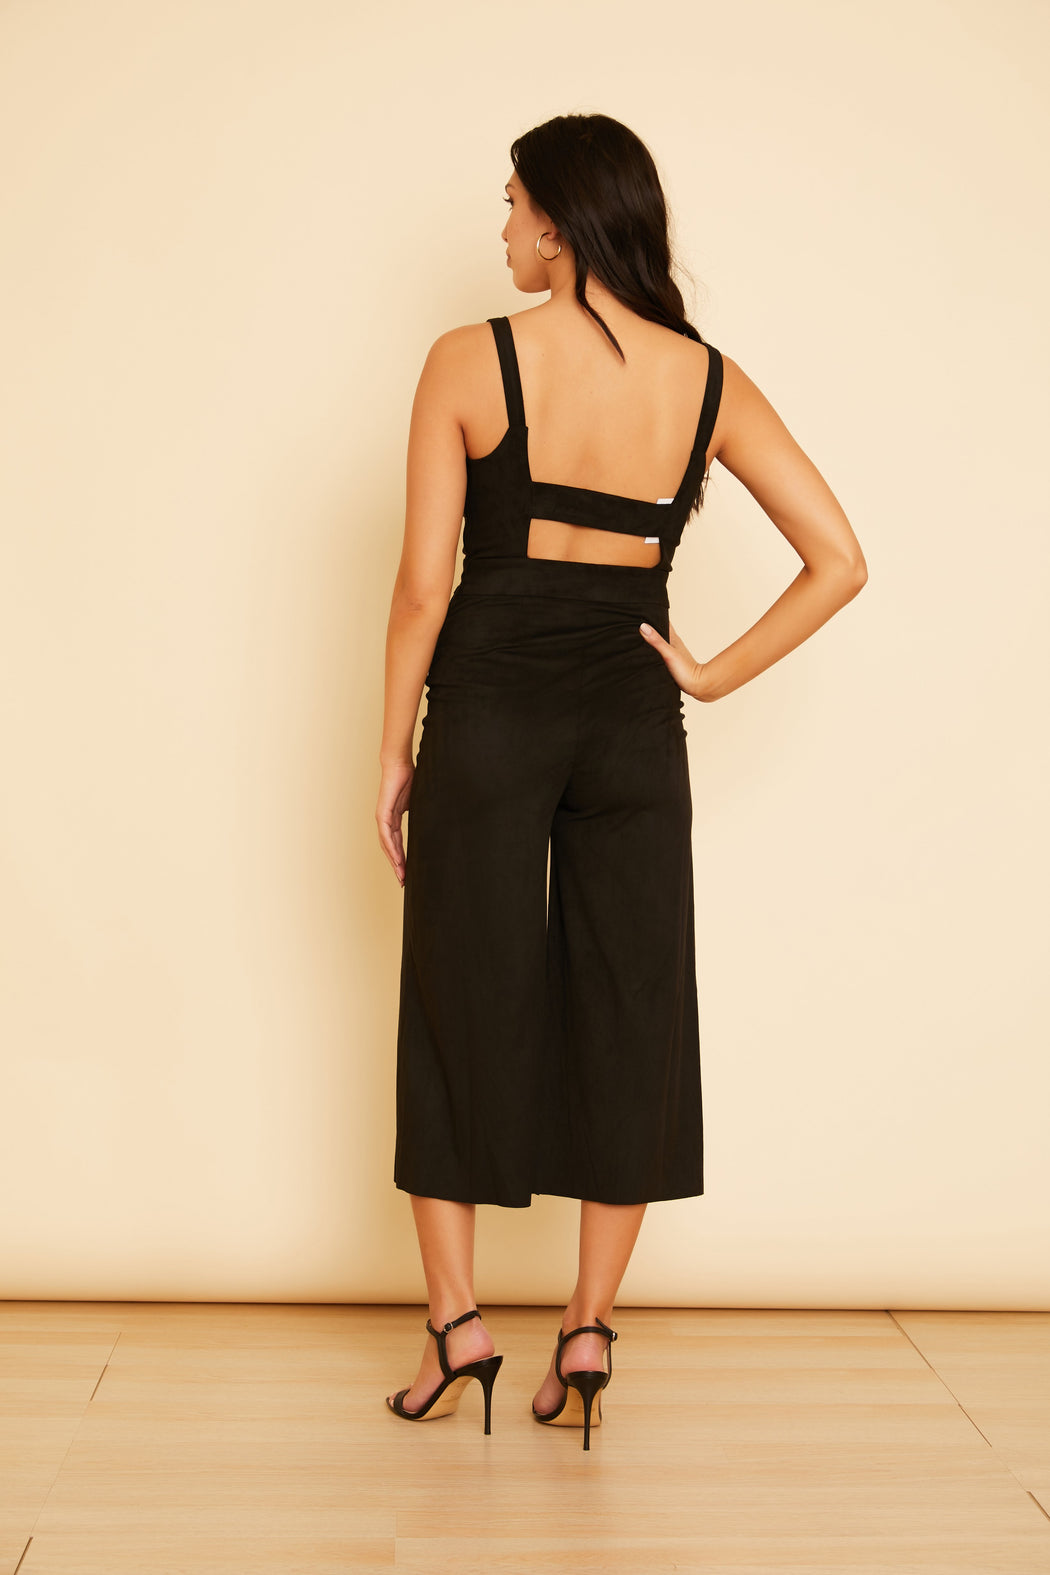 Day n Night Faux Suede Jumpsuit - wearNYLA